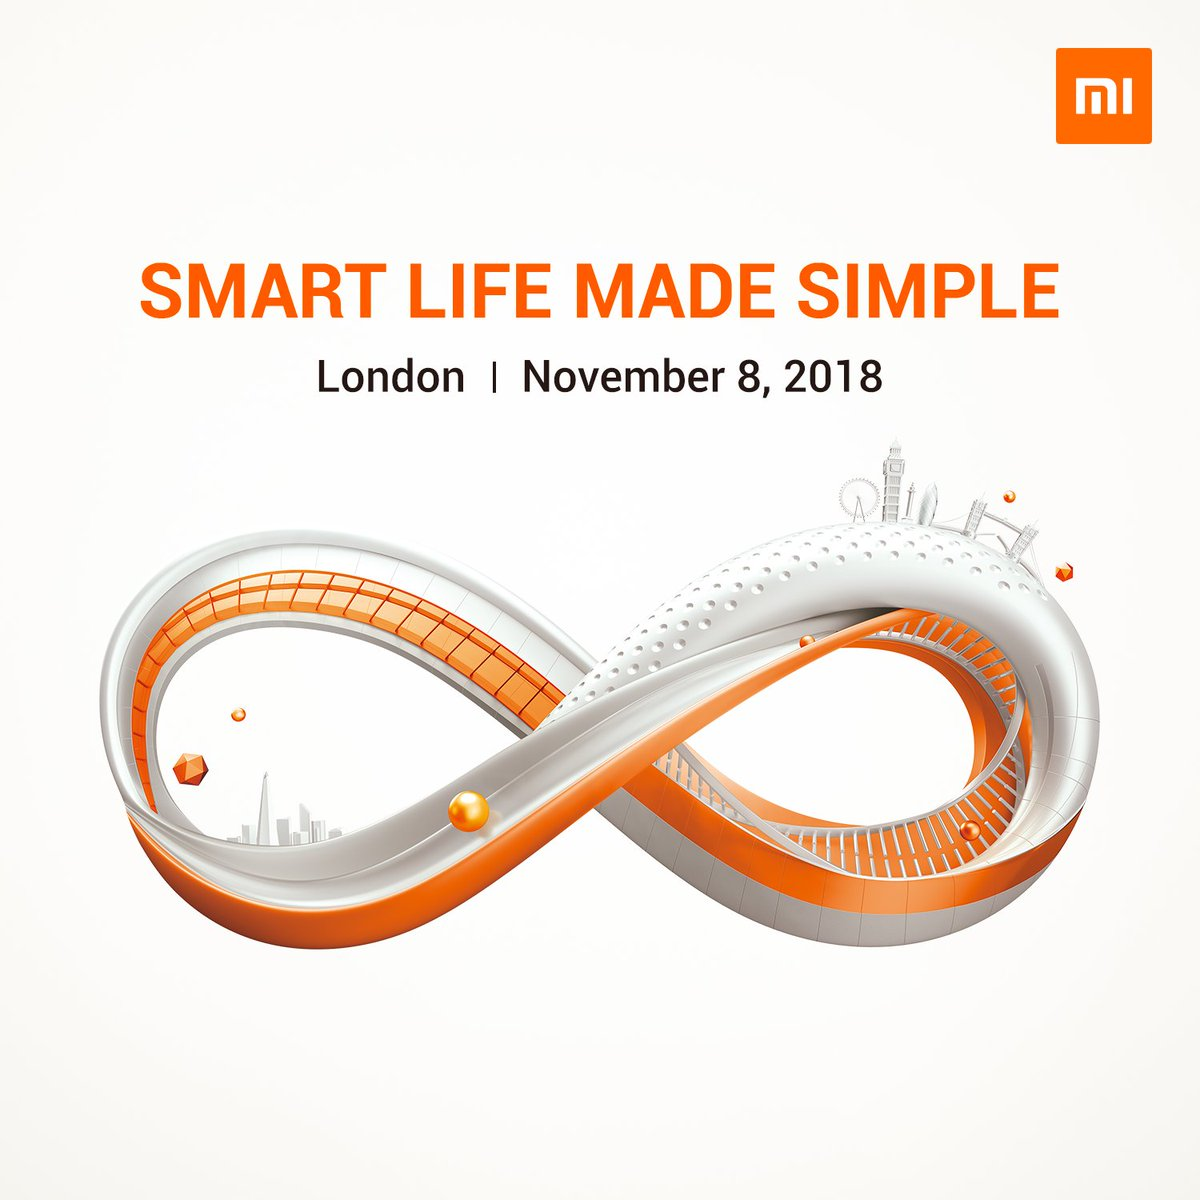 f243210aa2c3ab Xiaomis Expansionspläne  Neuer Store in London am 10. November!